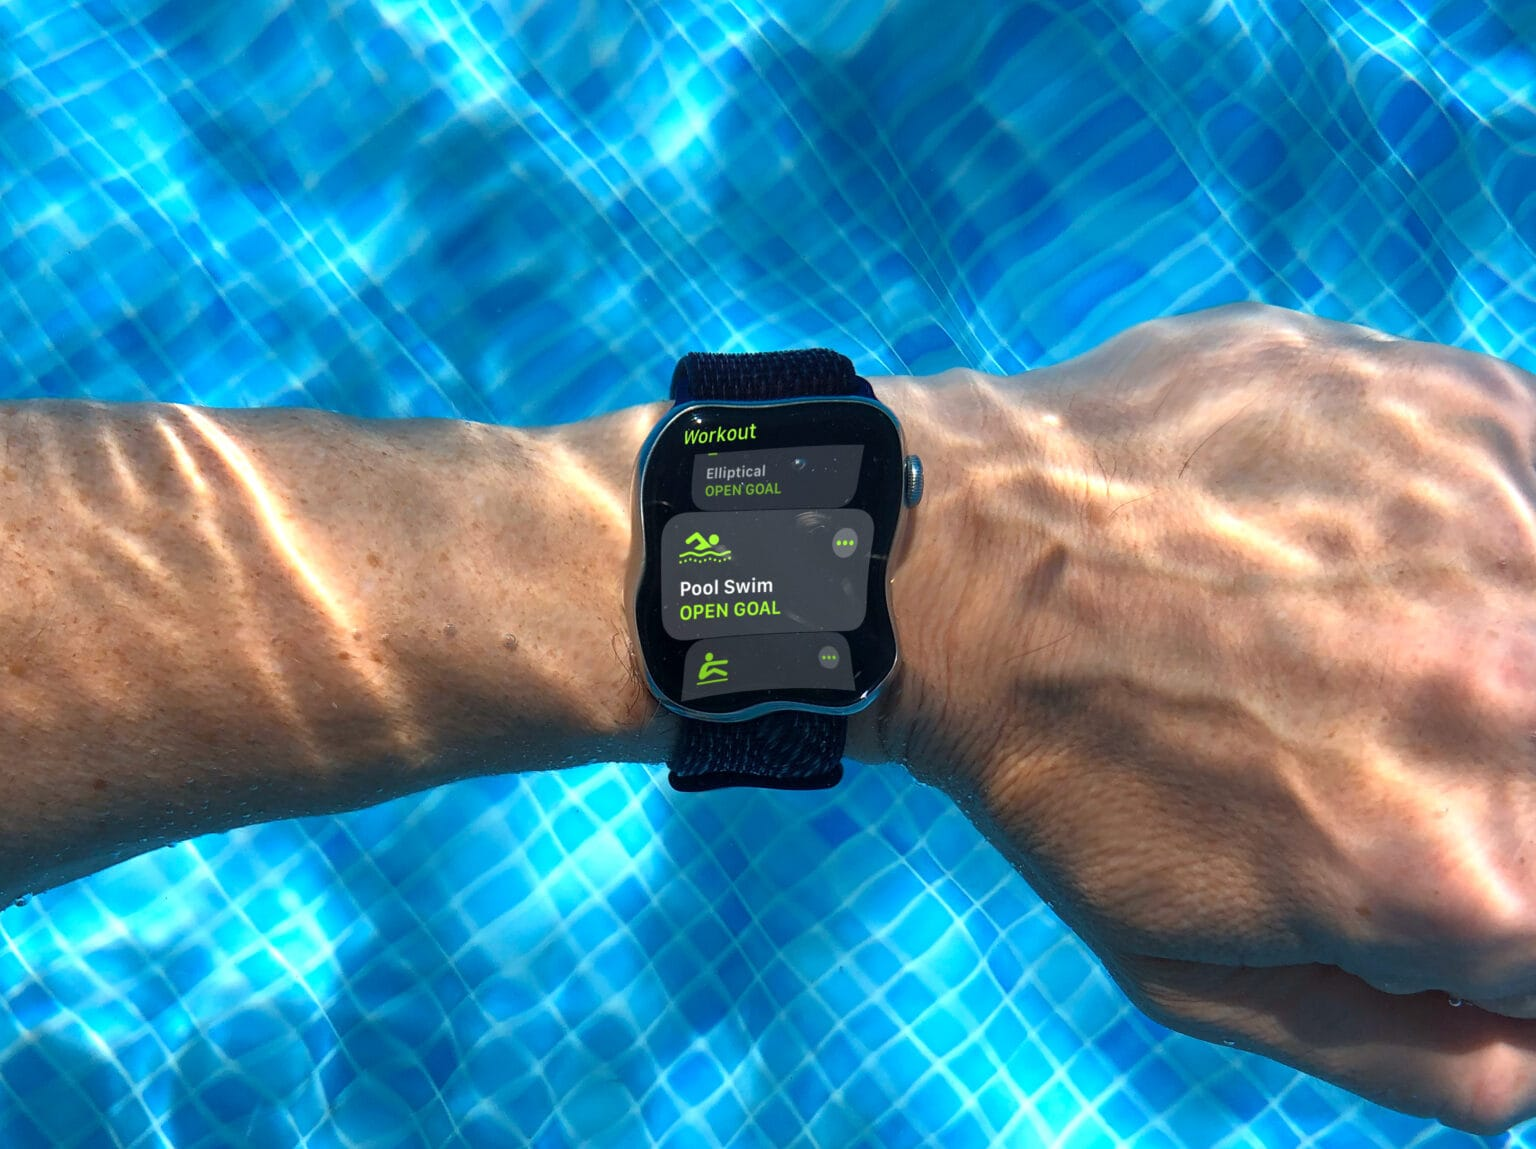 Do you know how Apple Watch counts your swim strokes?